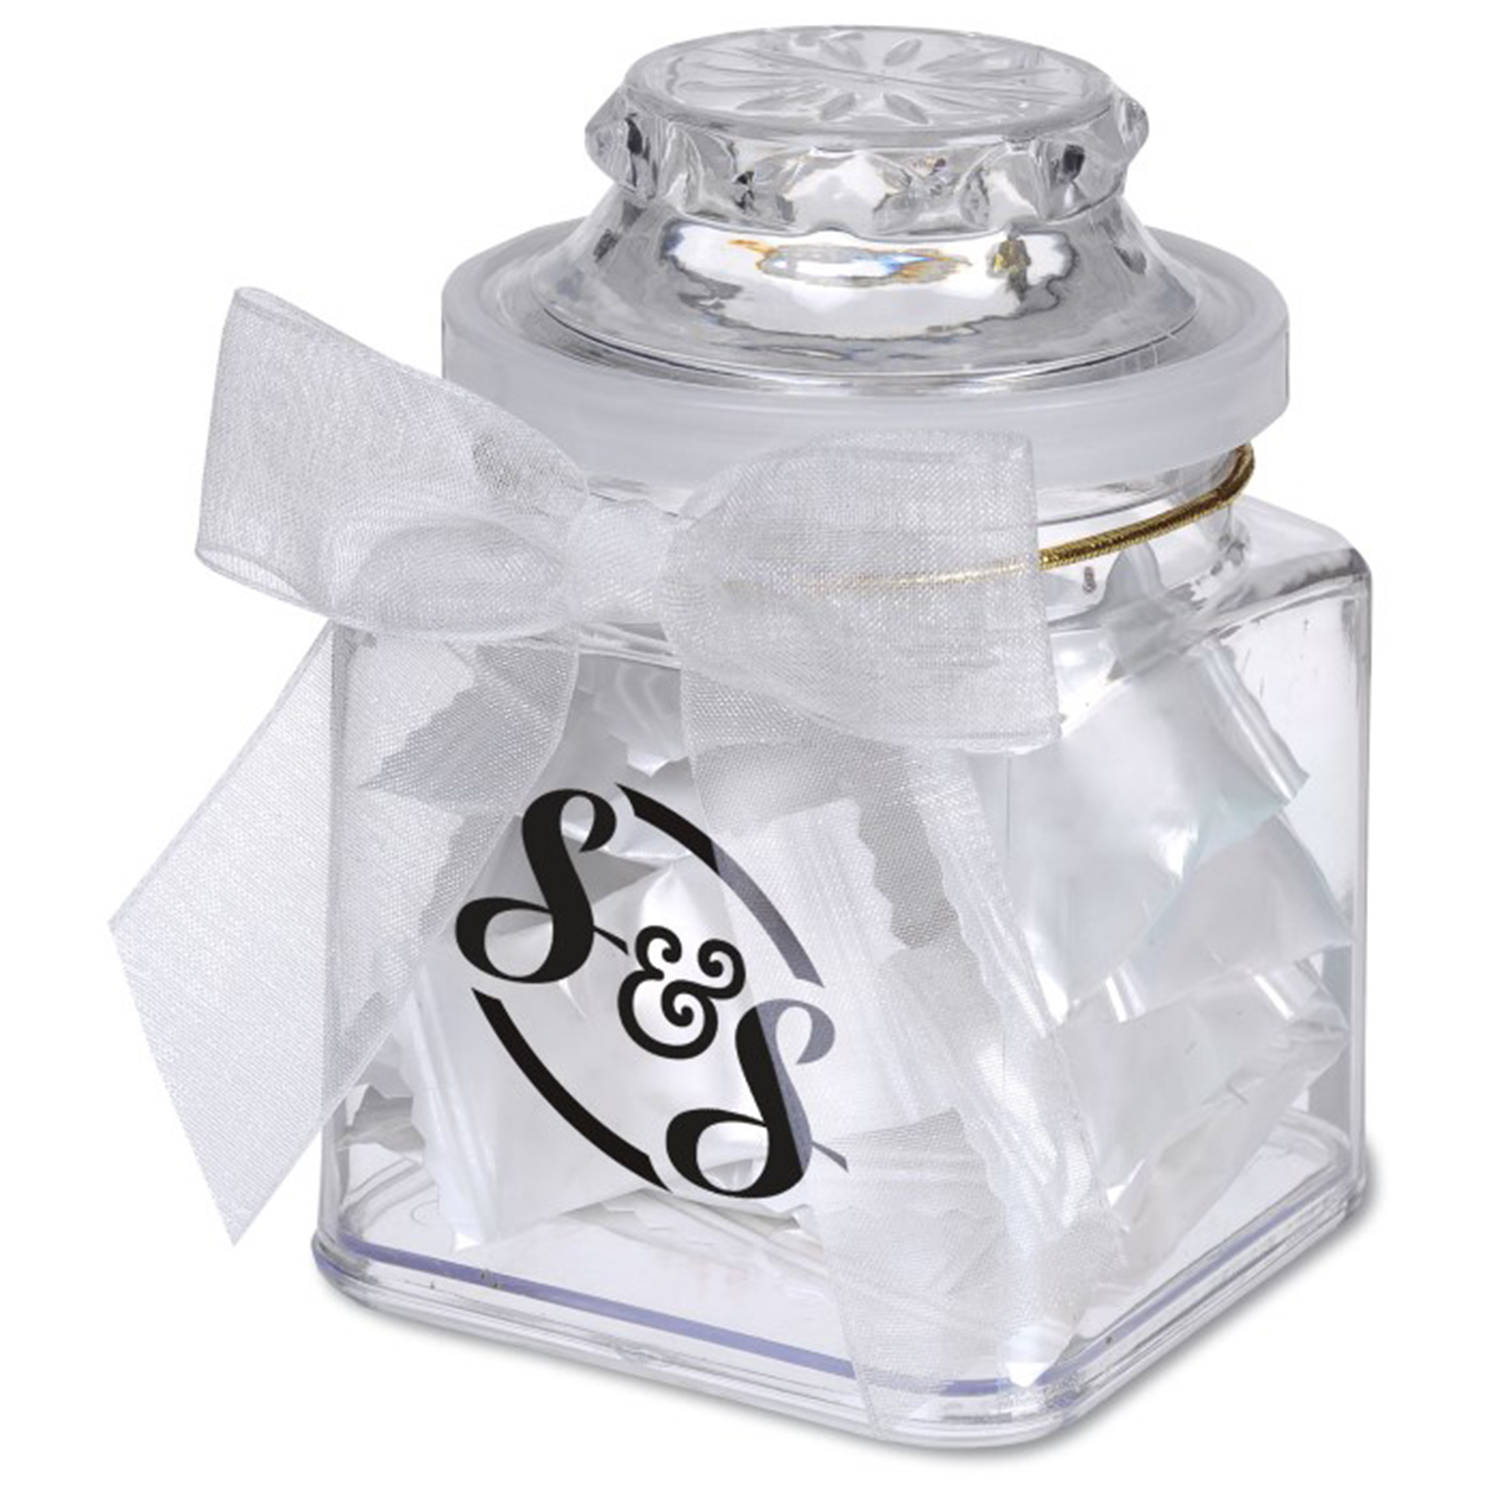 8 Oz. Plastic Jar w/ Personalized Candies, P208-PERSONALIZEDCANDIES, One Colour Imprint